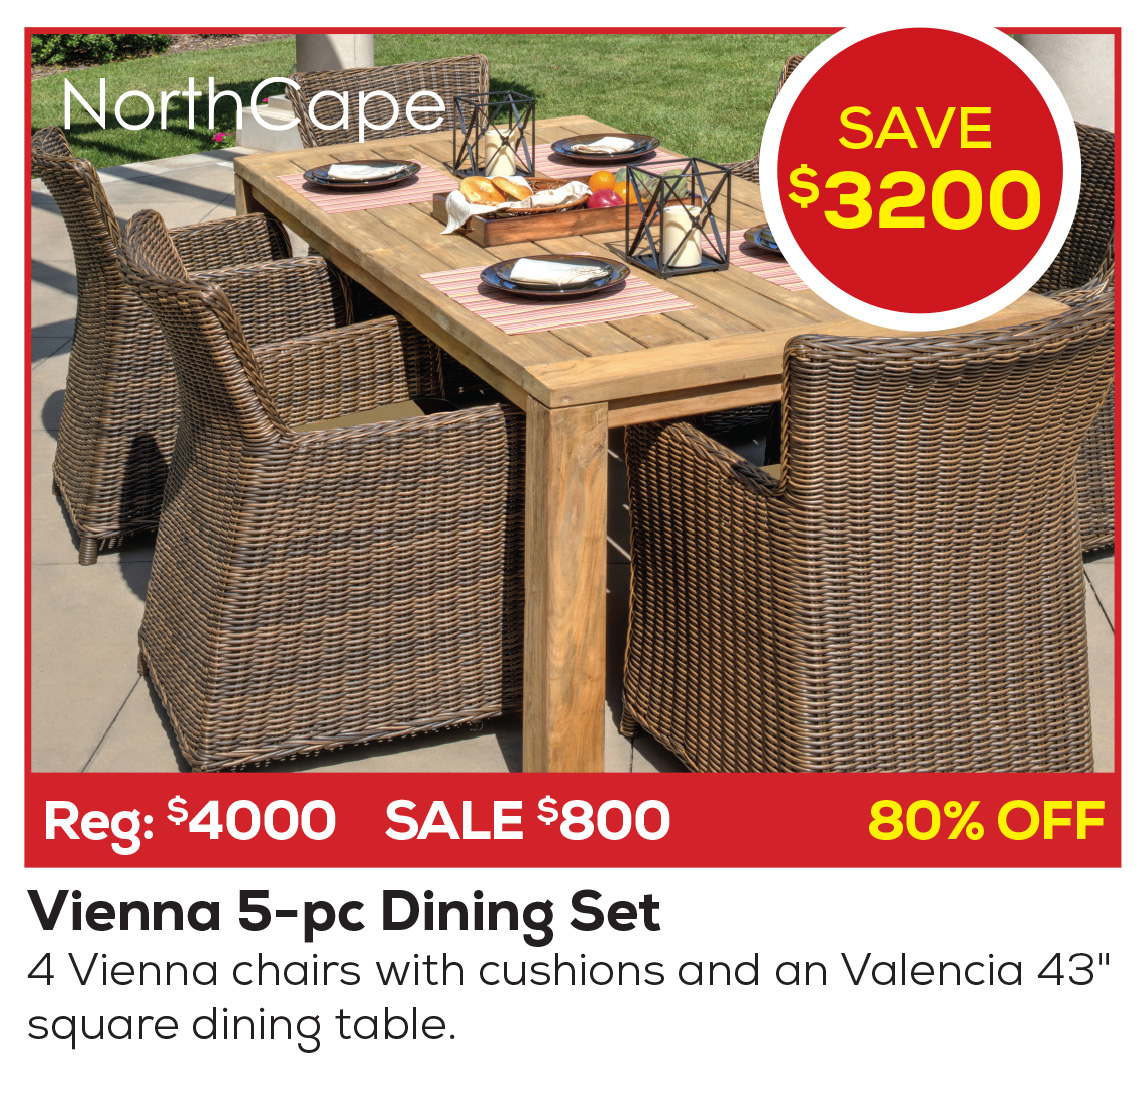 North Cape Dining Deals